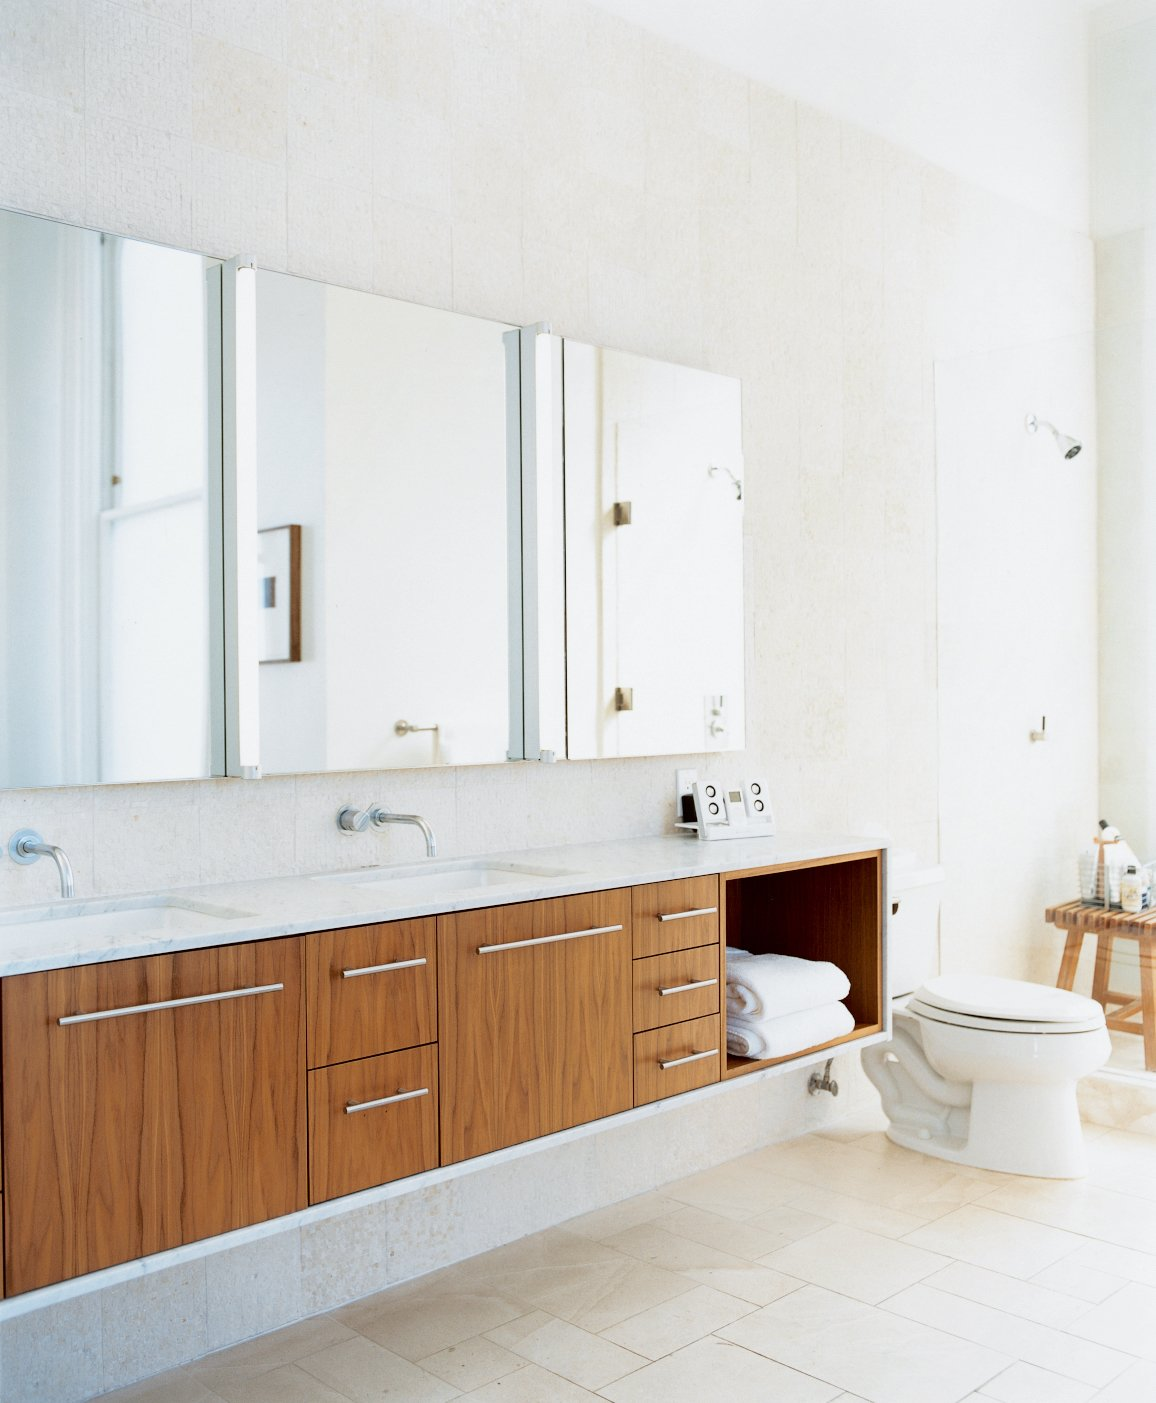 Bath Room and Wall Mount Sink The master bathroom used to be a tiny kitchen in what was once a tiny apartment. The cabinets were designed by Nilus de Matran and fabricated by George Slack.  Bath Reno from Taking Liberties